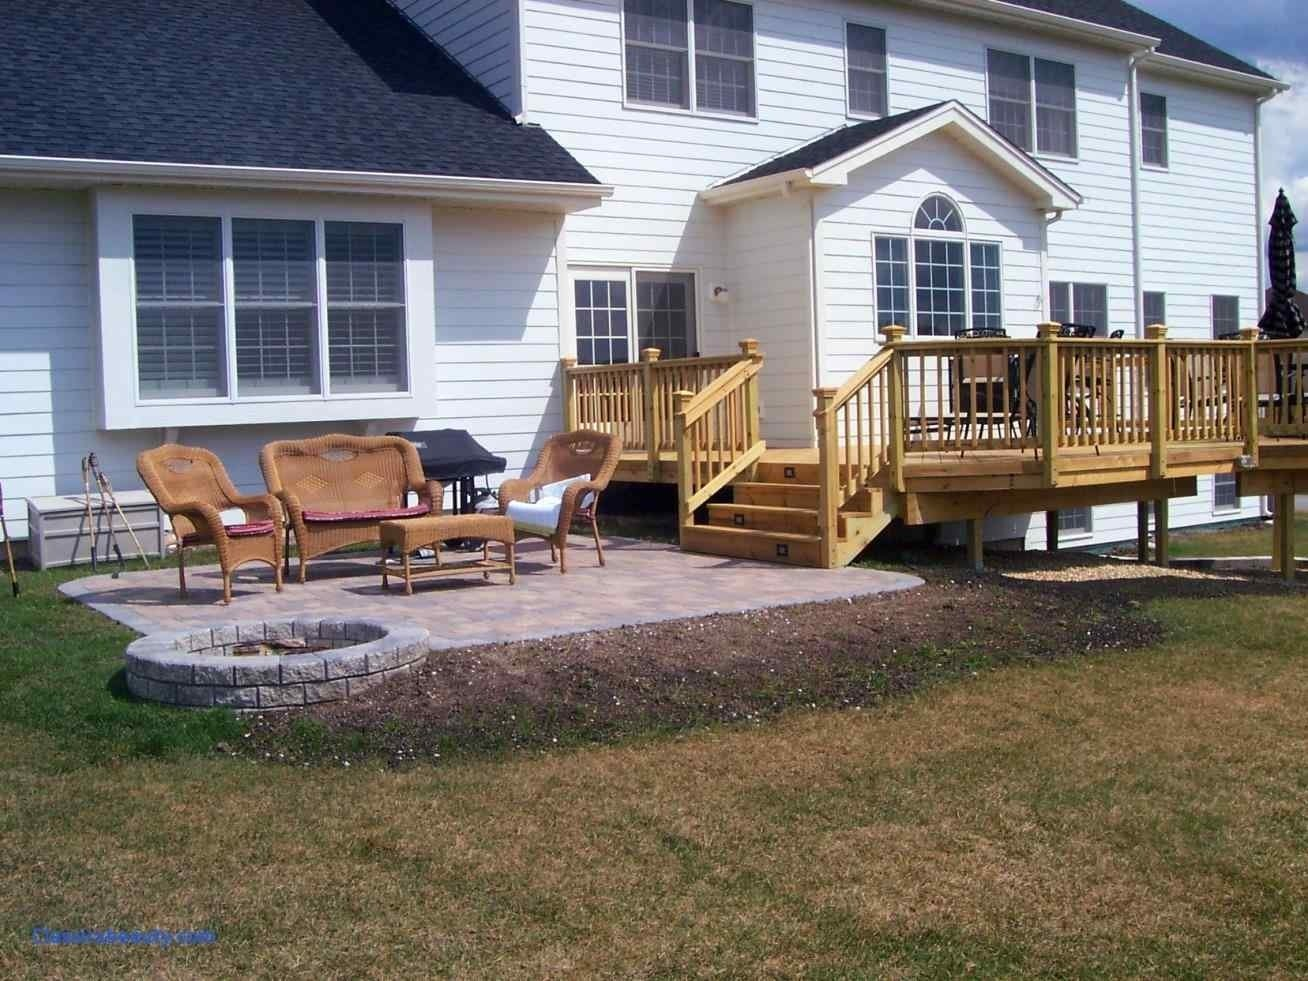 10 Stylish Deck Ideas With Fire Pit back deck ideas with fire pit arch dsgn 2021